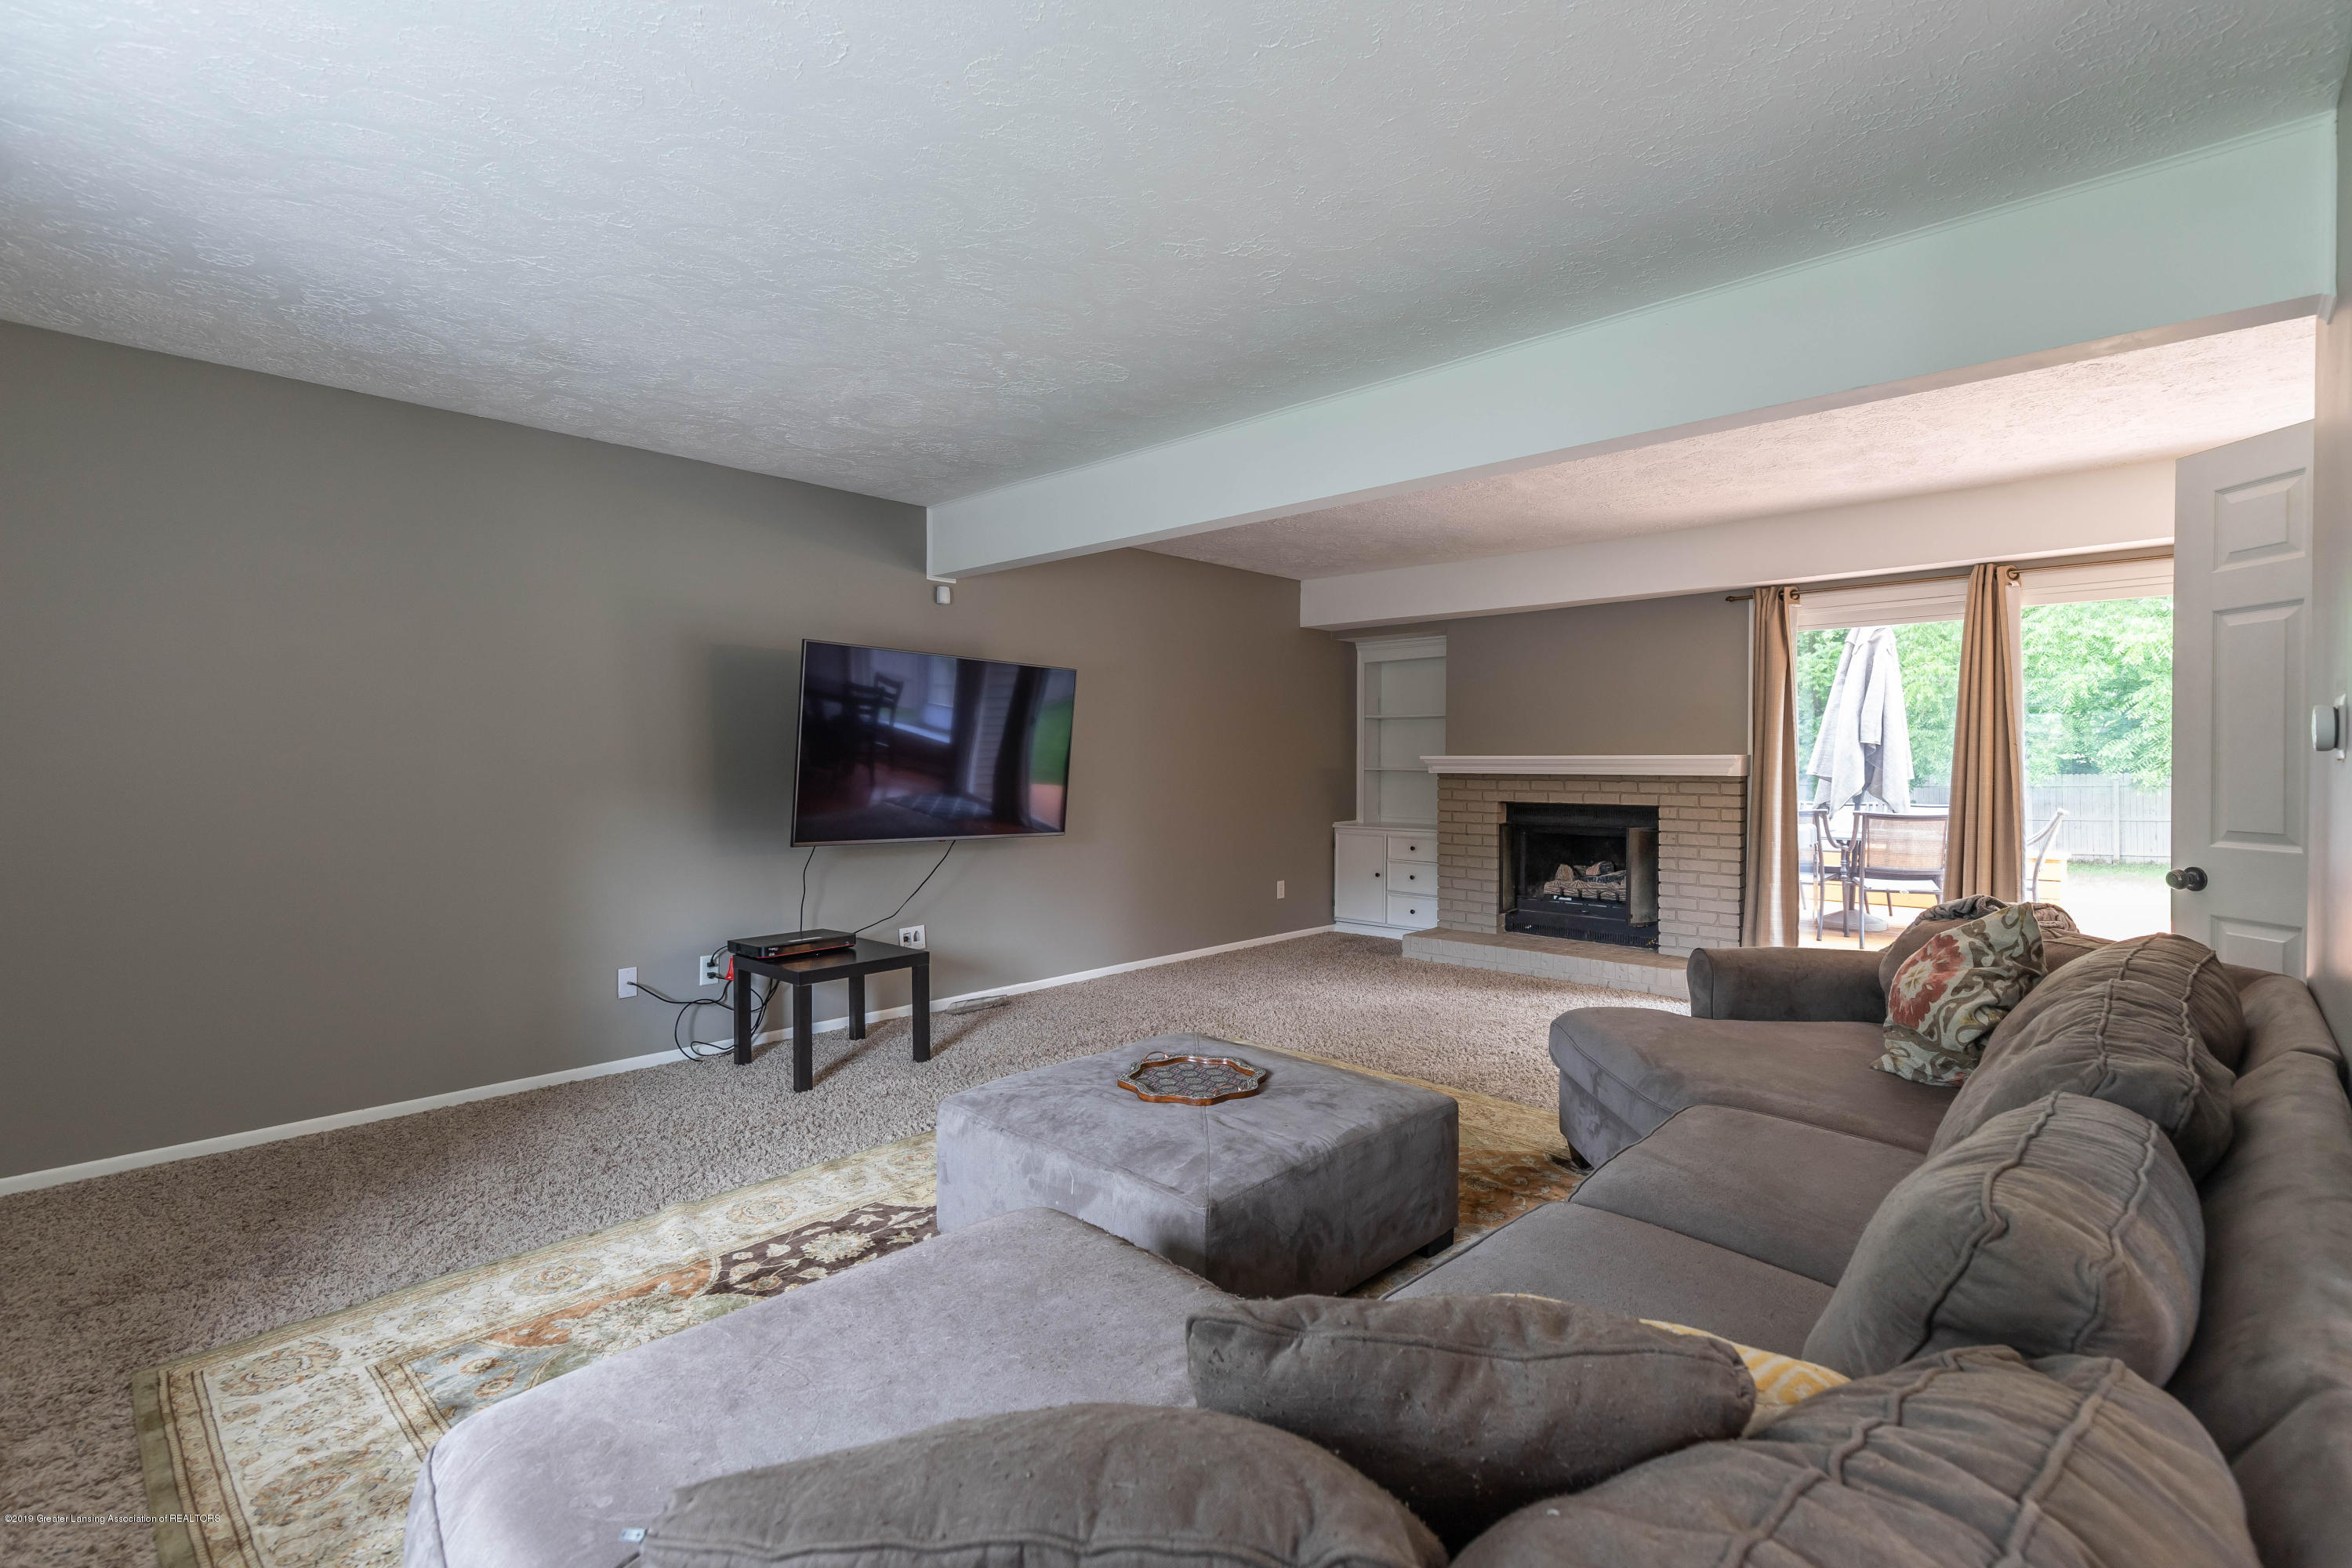 2497 Graystone Dr - 4. A Living Room - 5